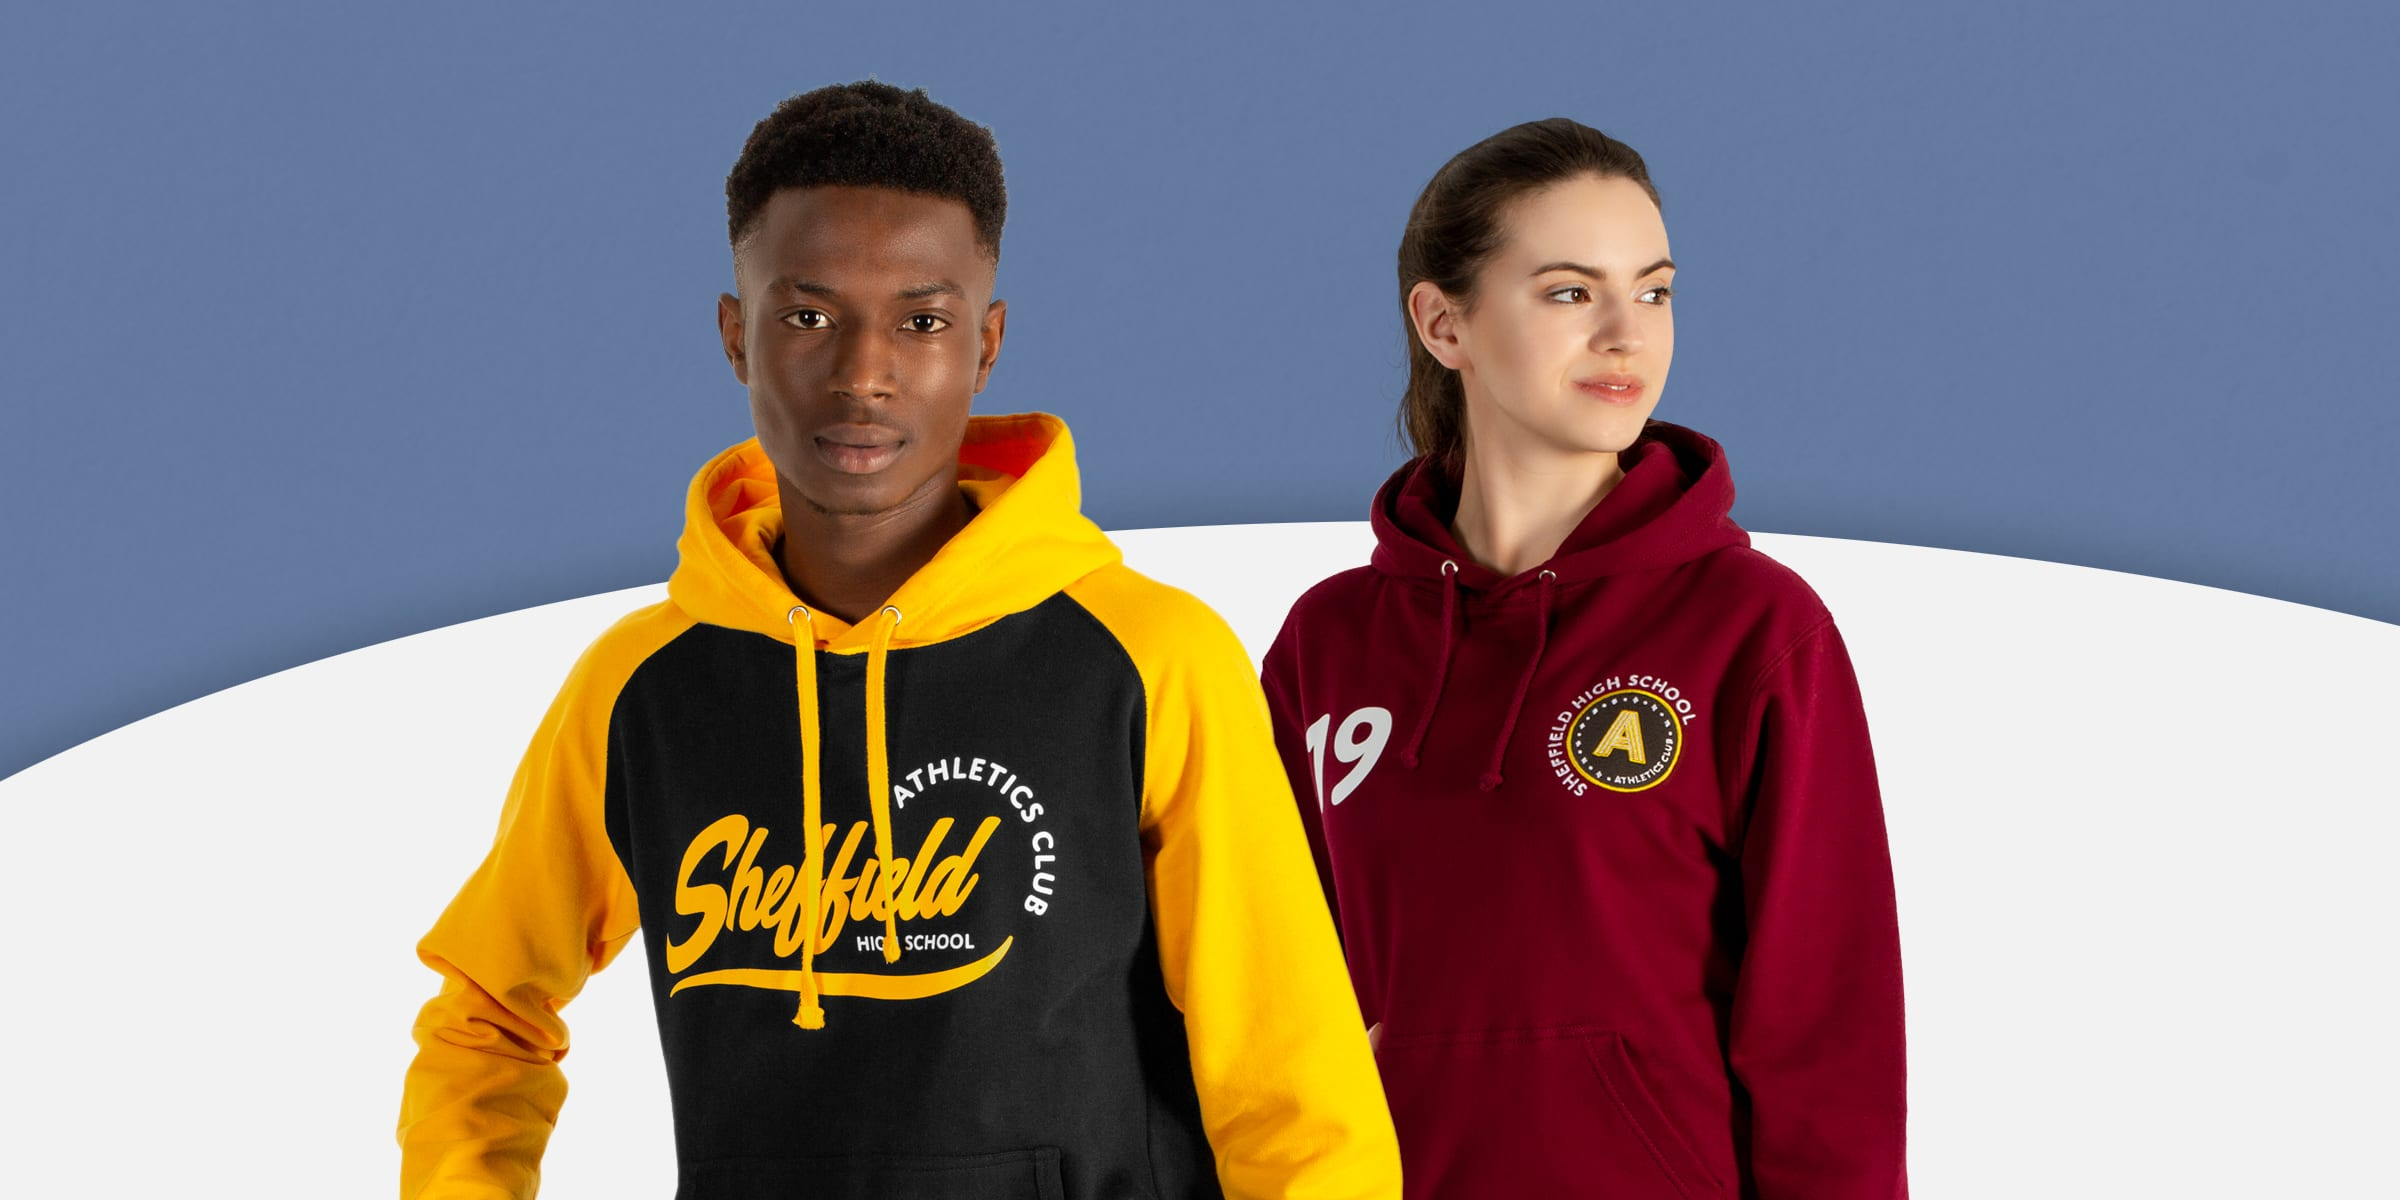 Sports team hoodies with custom logos, names and numbers for rugby, football, hockey, dance basketball teamwear.